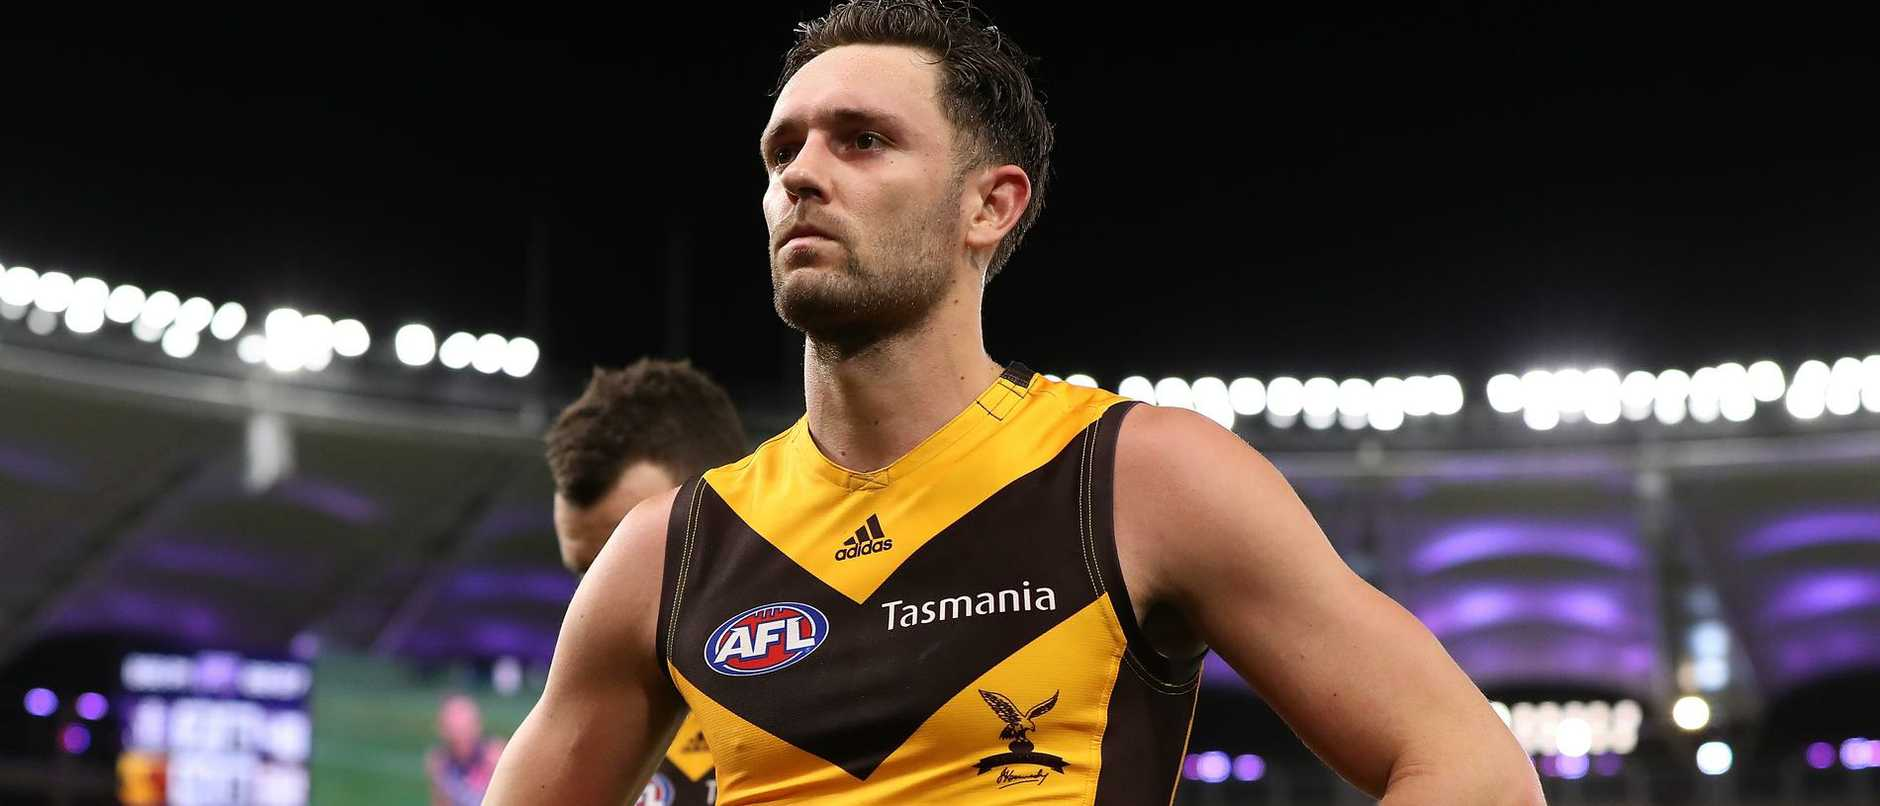 Hawthorn star Jack Gunston set to undergo back surgery and miss start of the 2021 season